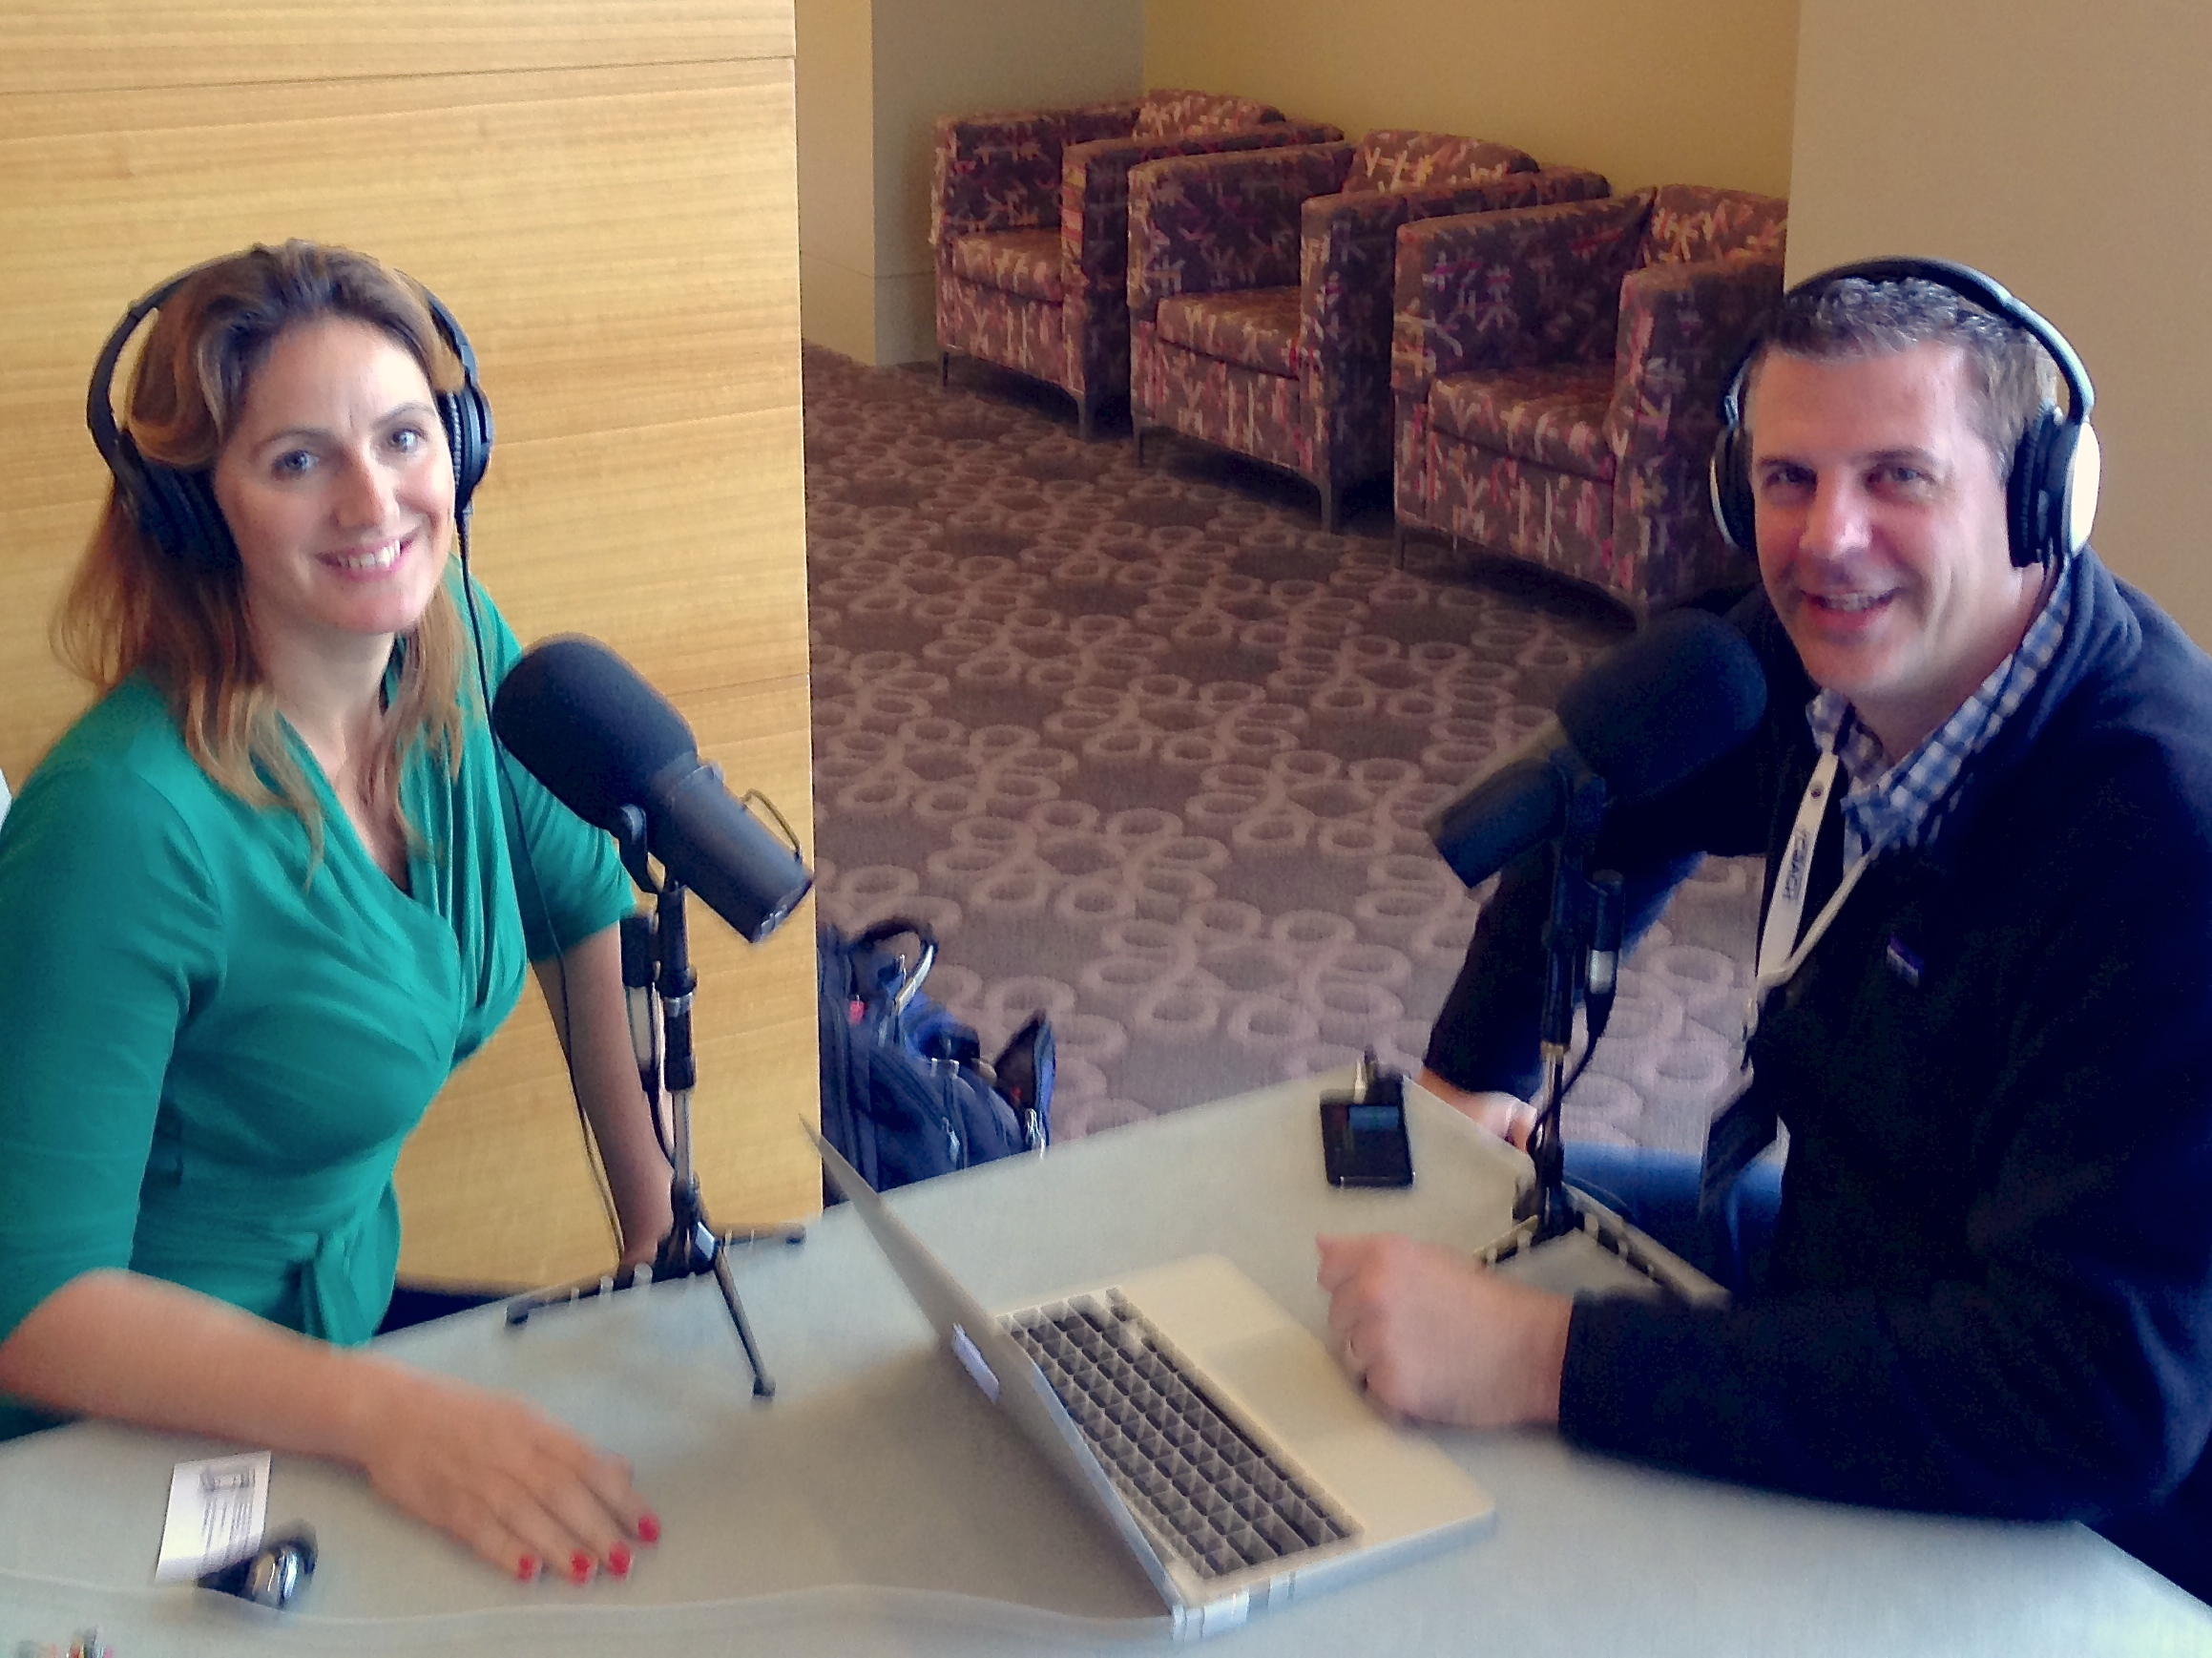 Natalie Sisson,    The Suitcase Entrepreneur    and Shawn Smith,    The Mobile Pro   , at a Podcast Conference.